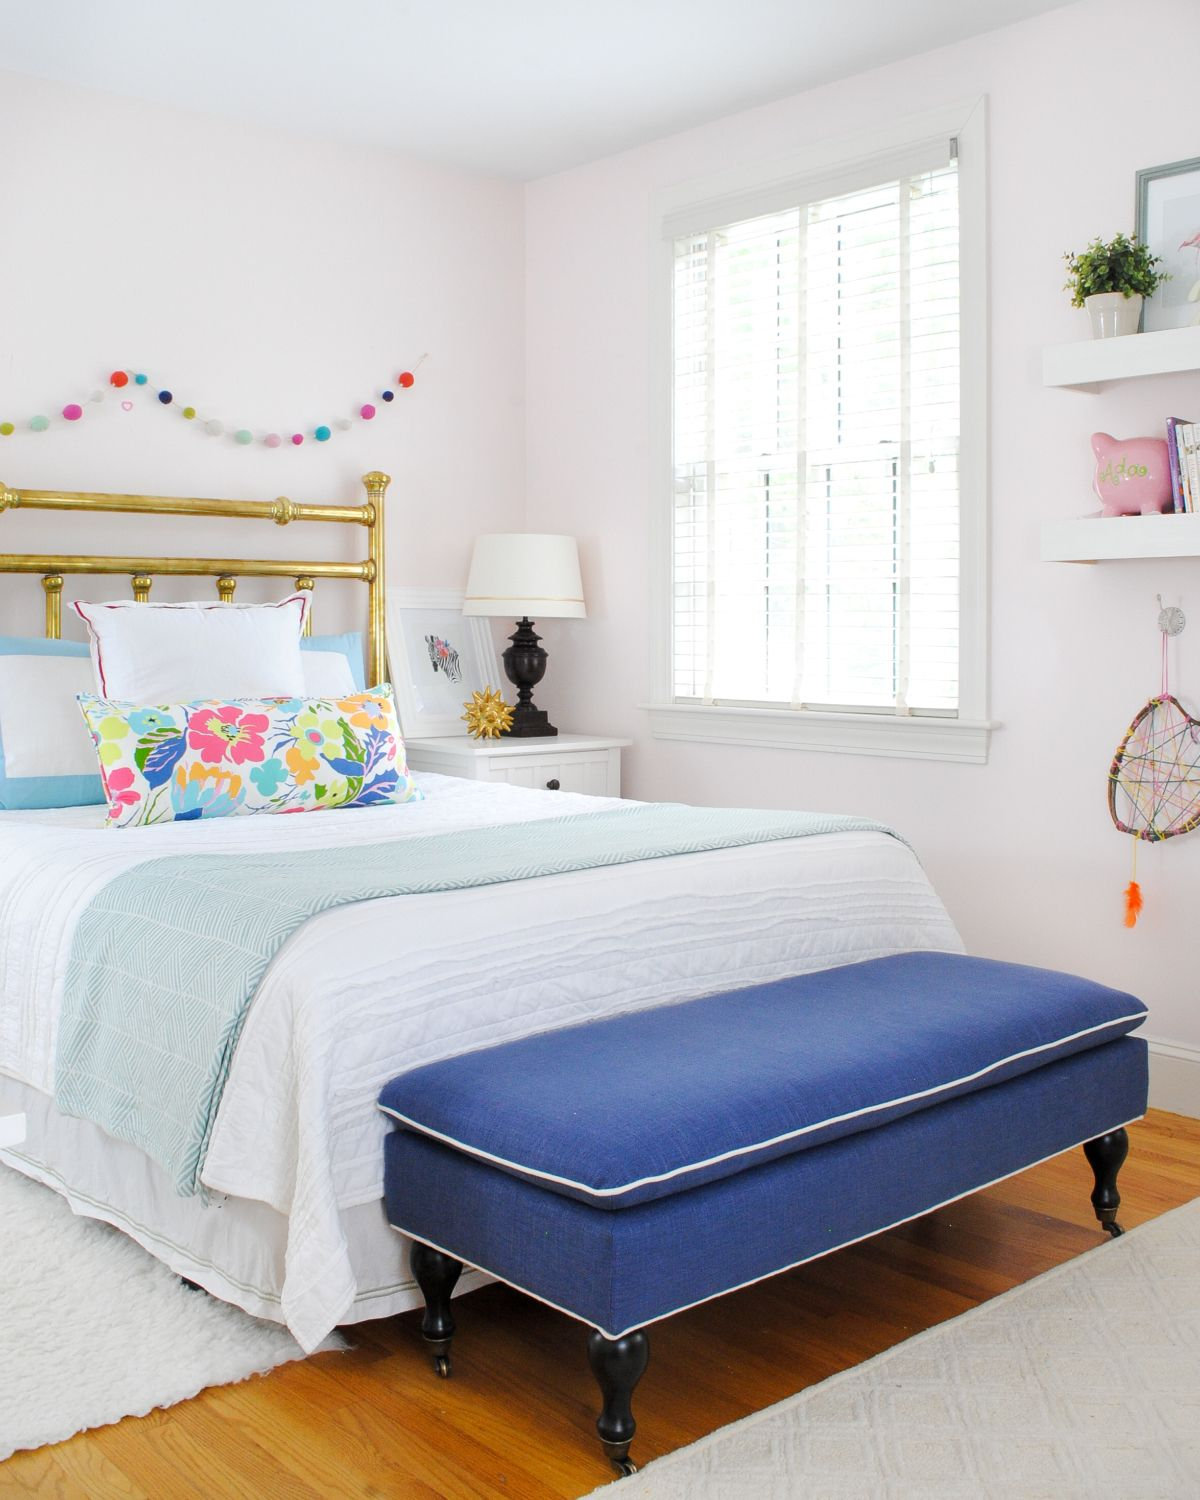 Big Bedrooms For Girls big girl bedroom update  new mattress and bedding | pink accents